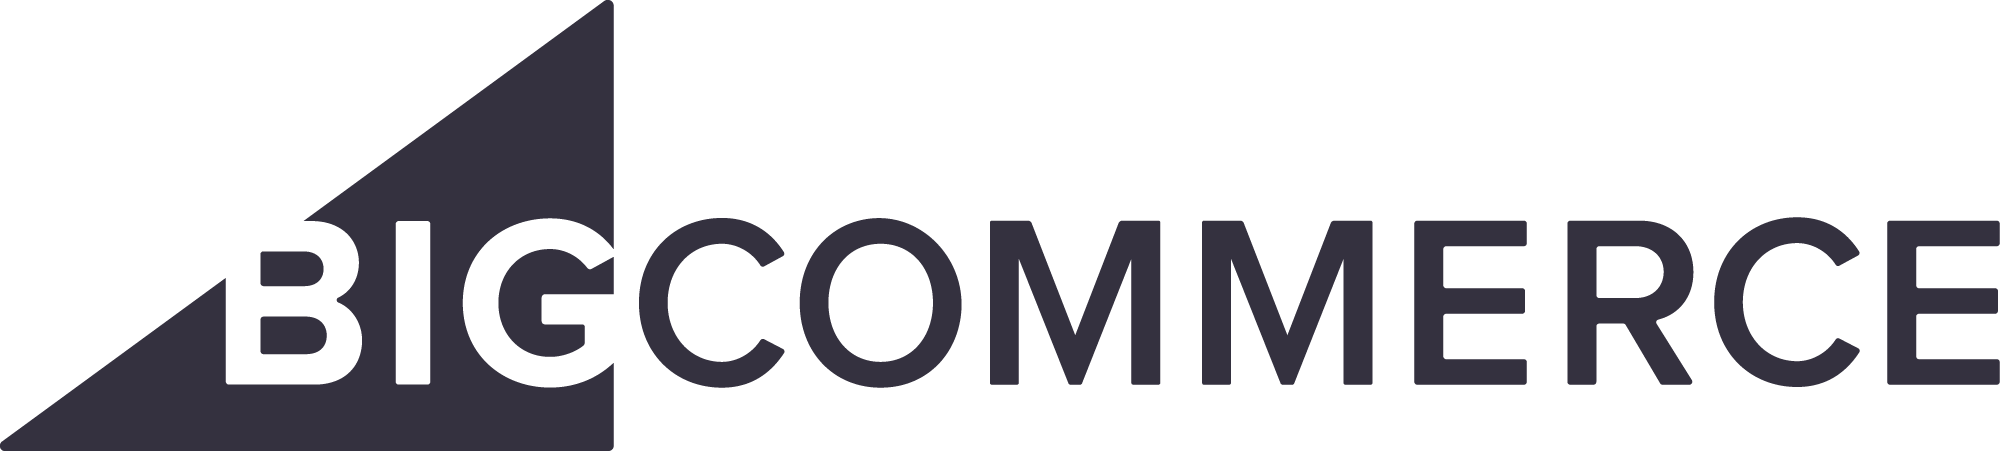 Bigcommerce E-commerce Software Solution